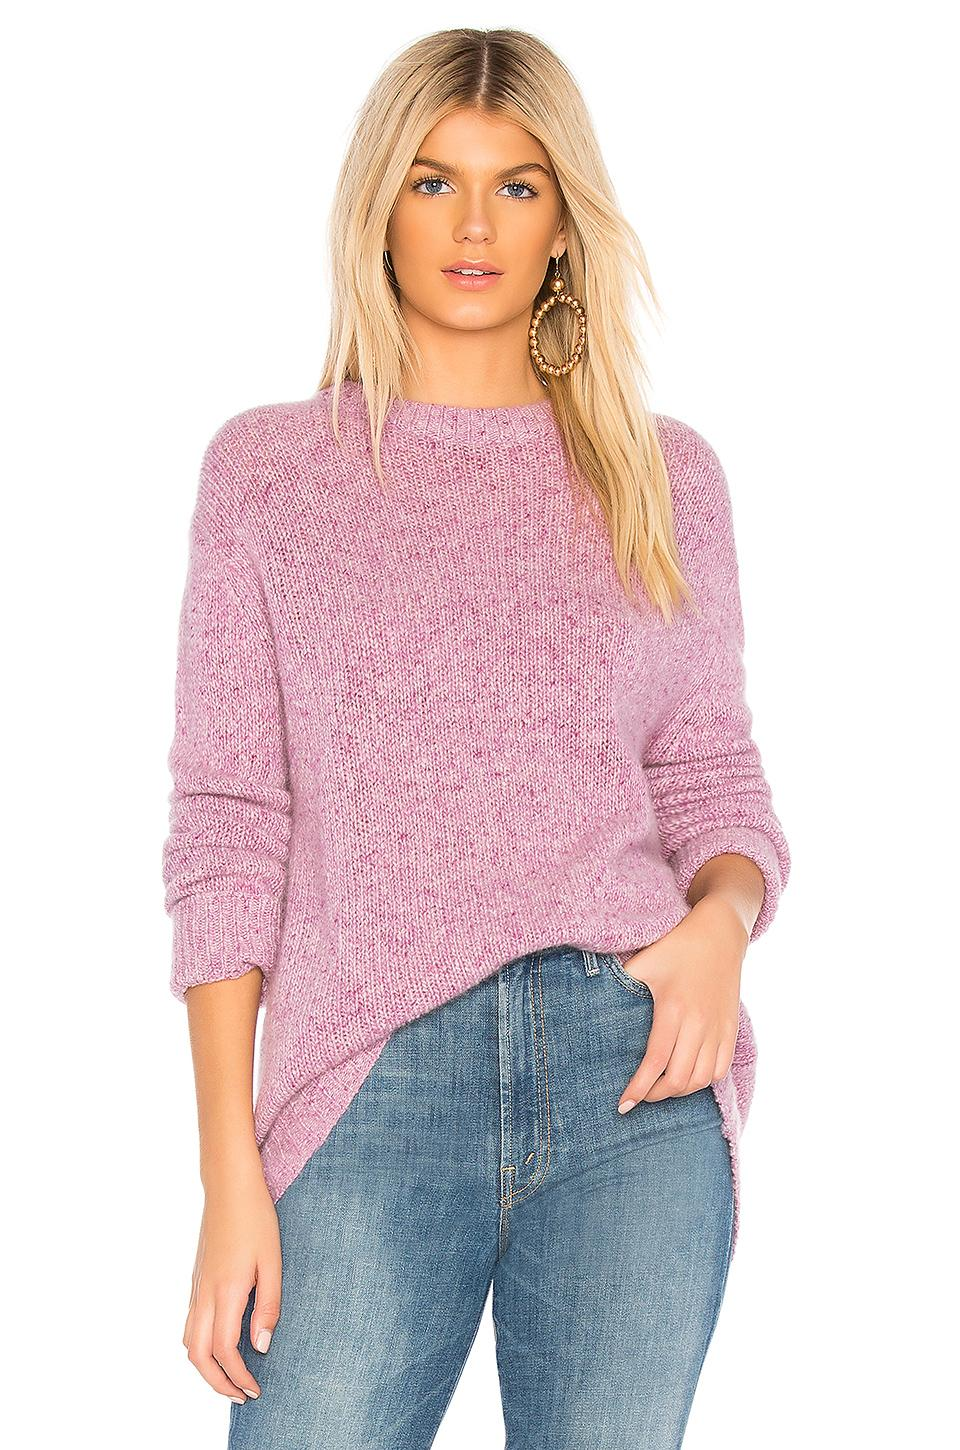 360cashmere Mag Sweater In Purple. In May Blossom